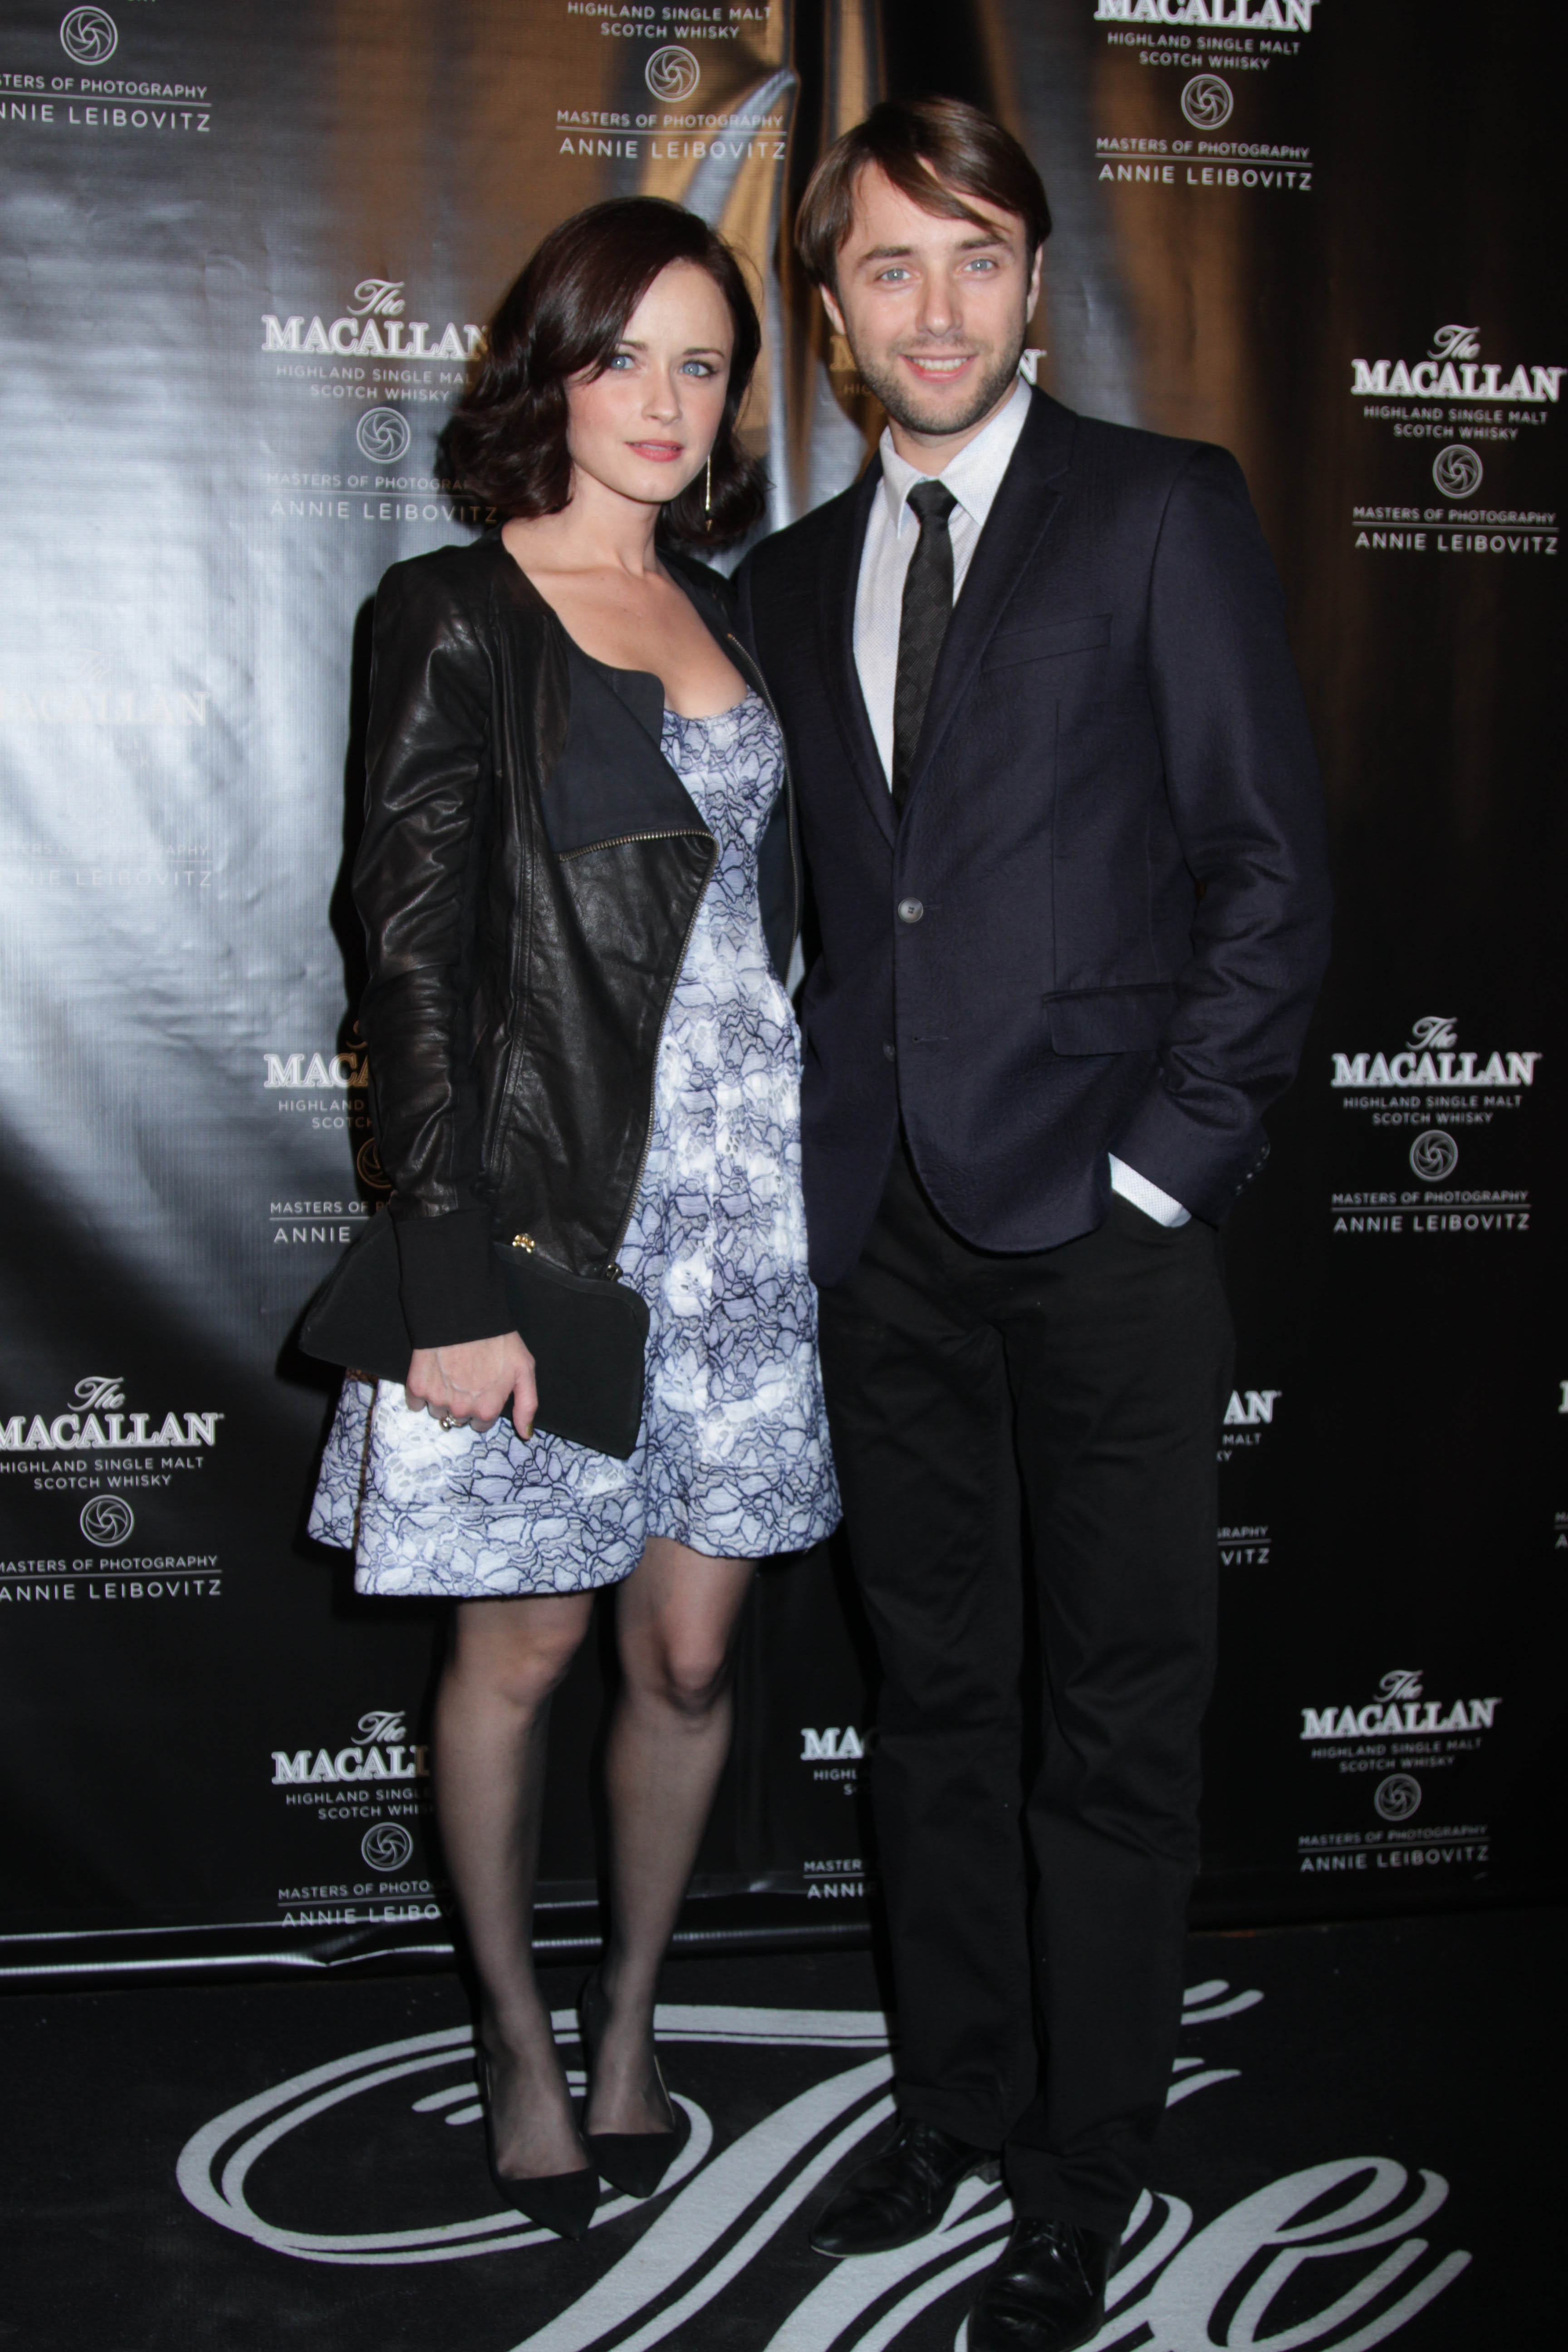 Alexis Bledel - The Macallan Masters Of Photography Series Launch - NYC - 101012_003.jpg